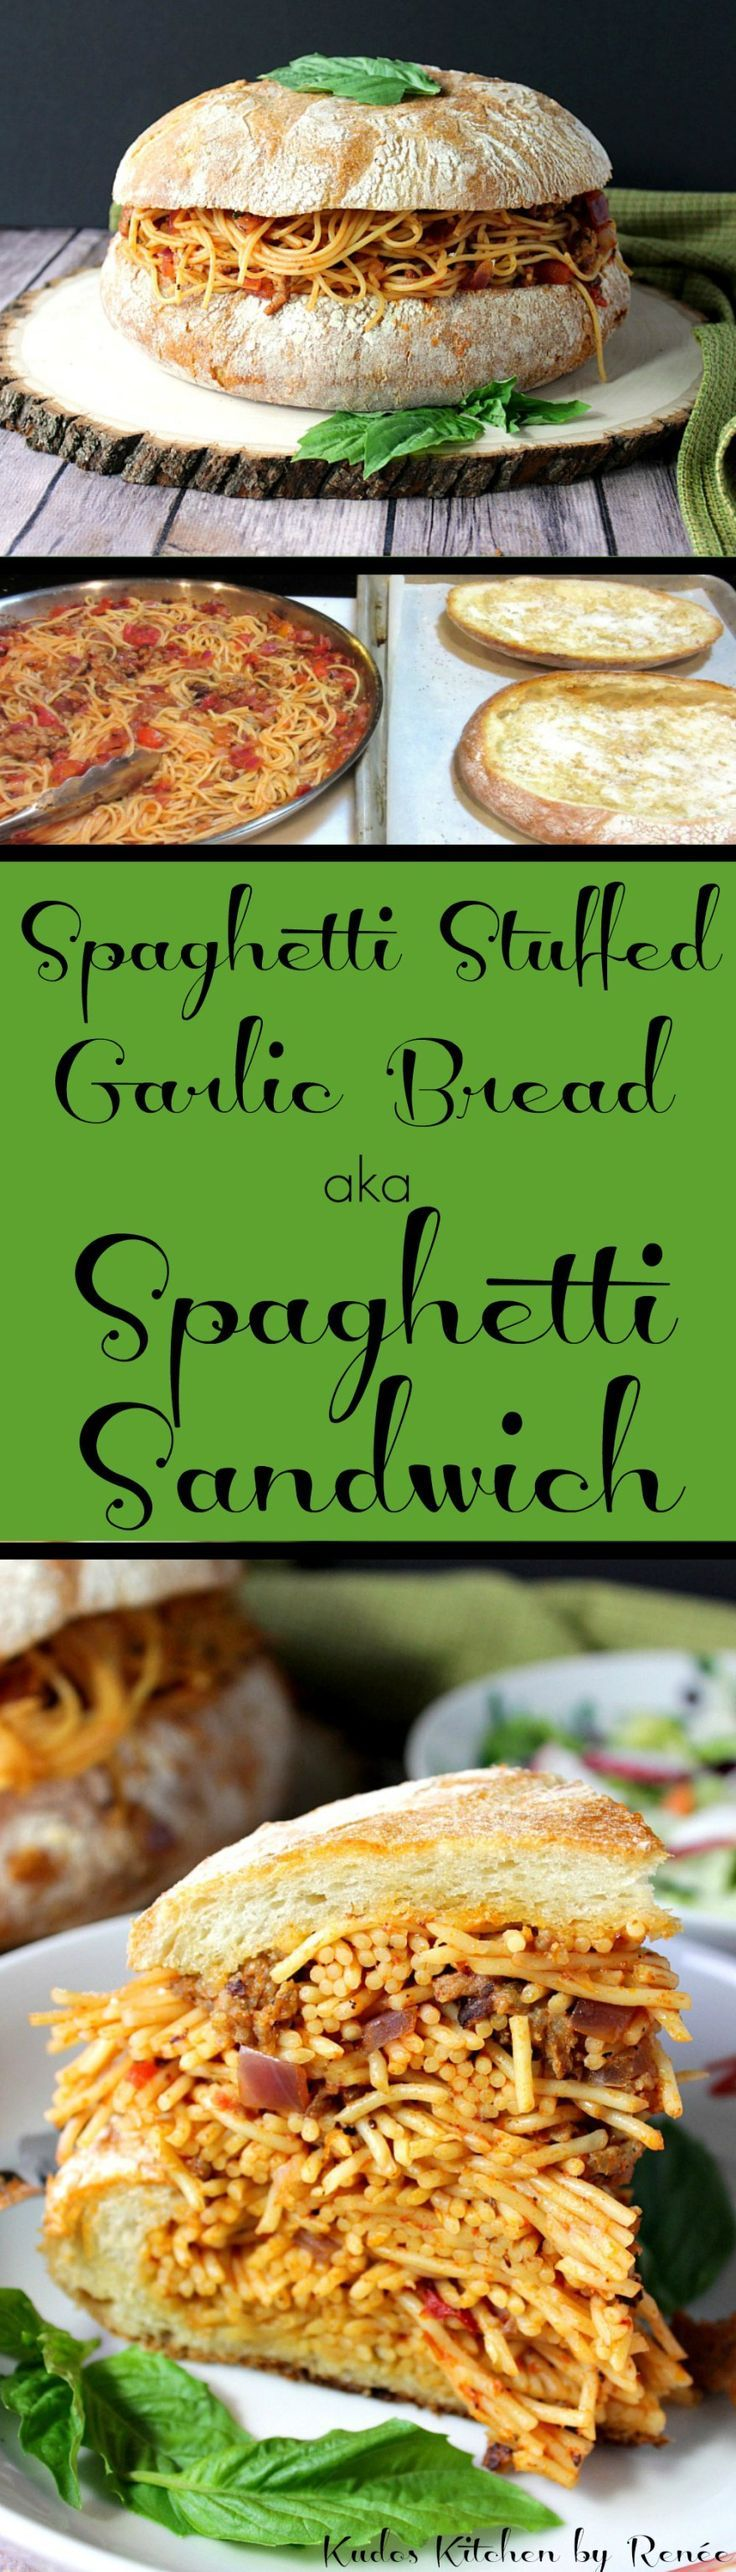 What do you get when you combine two tasty family favorites into one fantastically fun dinner? Spaghetti Stuffed Garlic Cheese Bread, that's what!